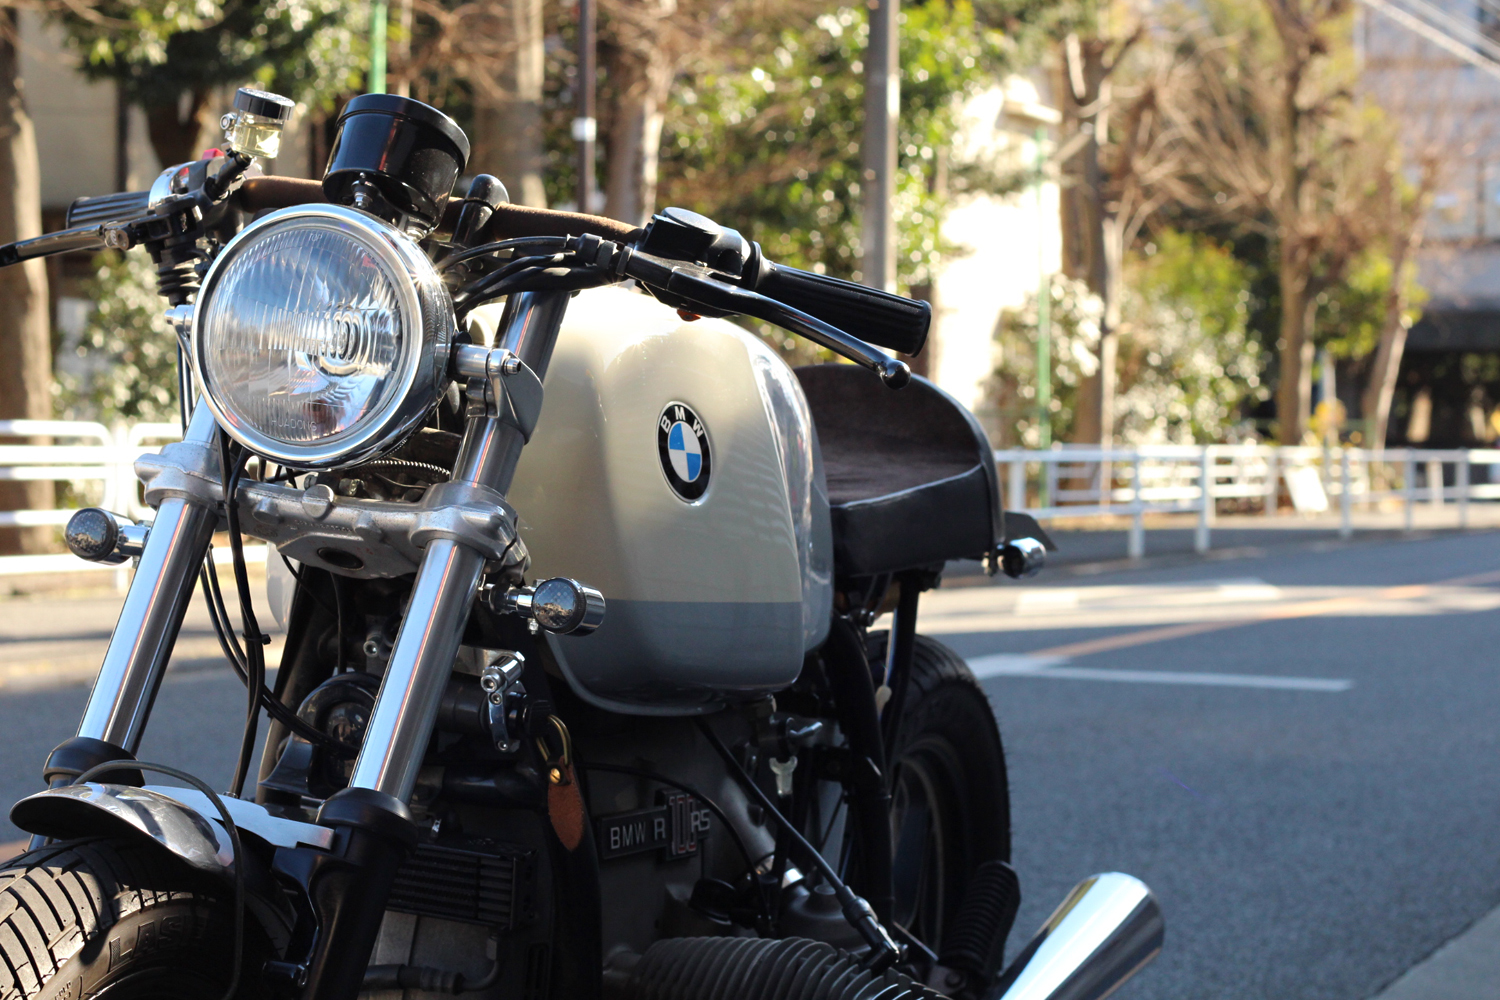 BMW R100RS CUSTOM OutLoud Manx Seat Cafe Racer Cstom